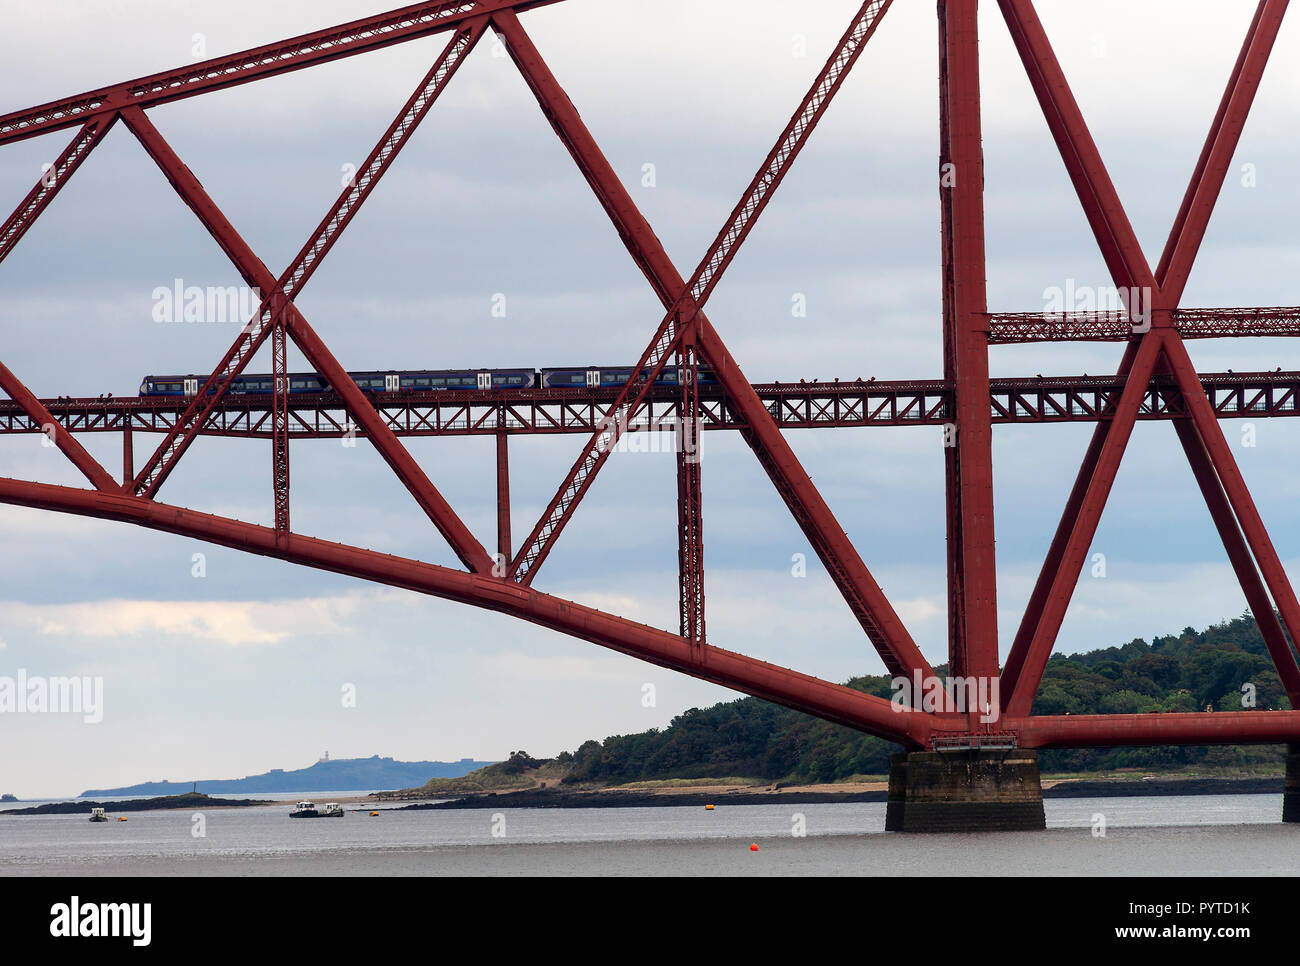 A Passenger Train Crossing the Forth Railway Bridge over The Firth of Forth at South Queensferry near Edinburgh Scotland United Kingdom UK Stock Photo